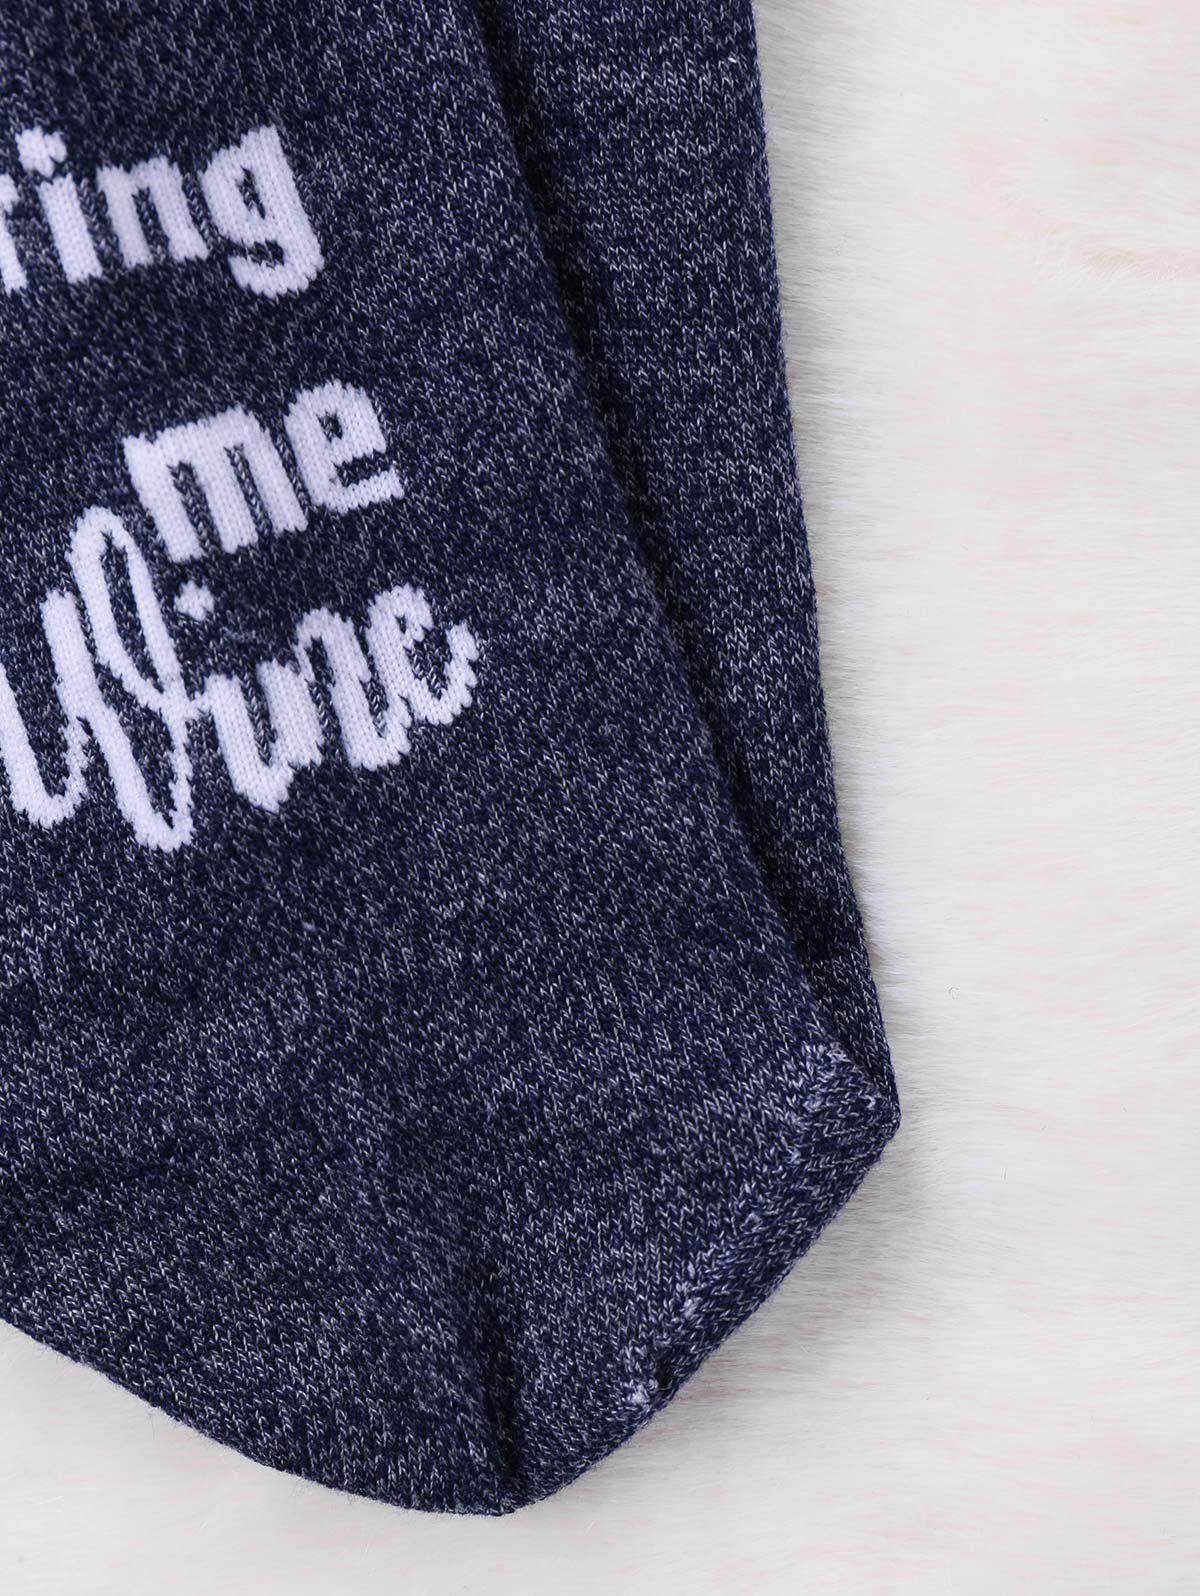 Graphic Letter Printed Crew Socks - DEEP GRAY